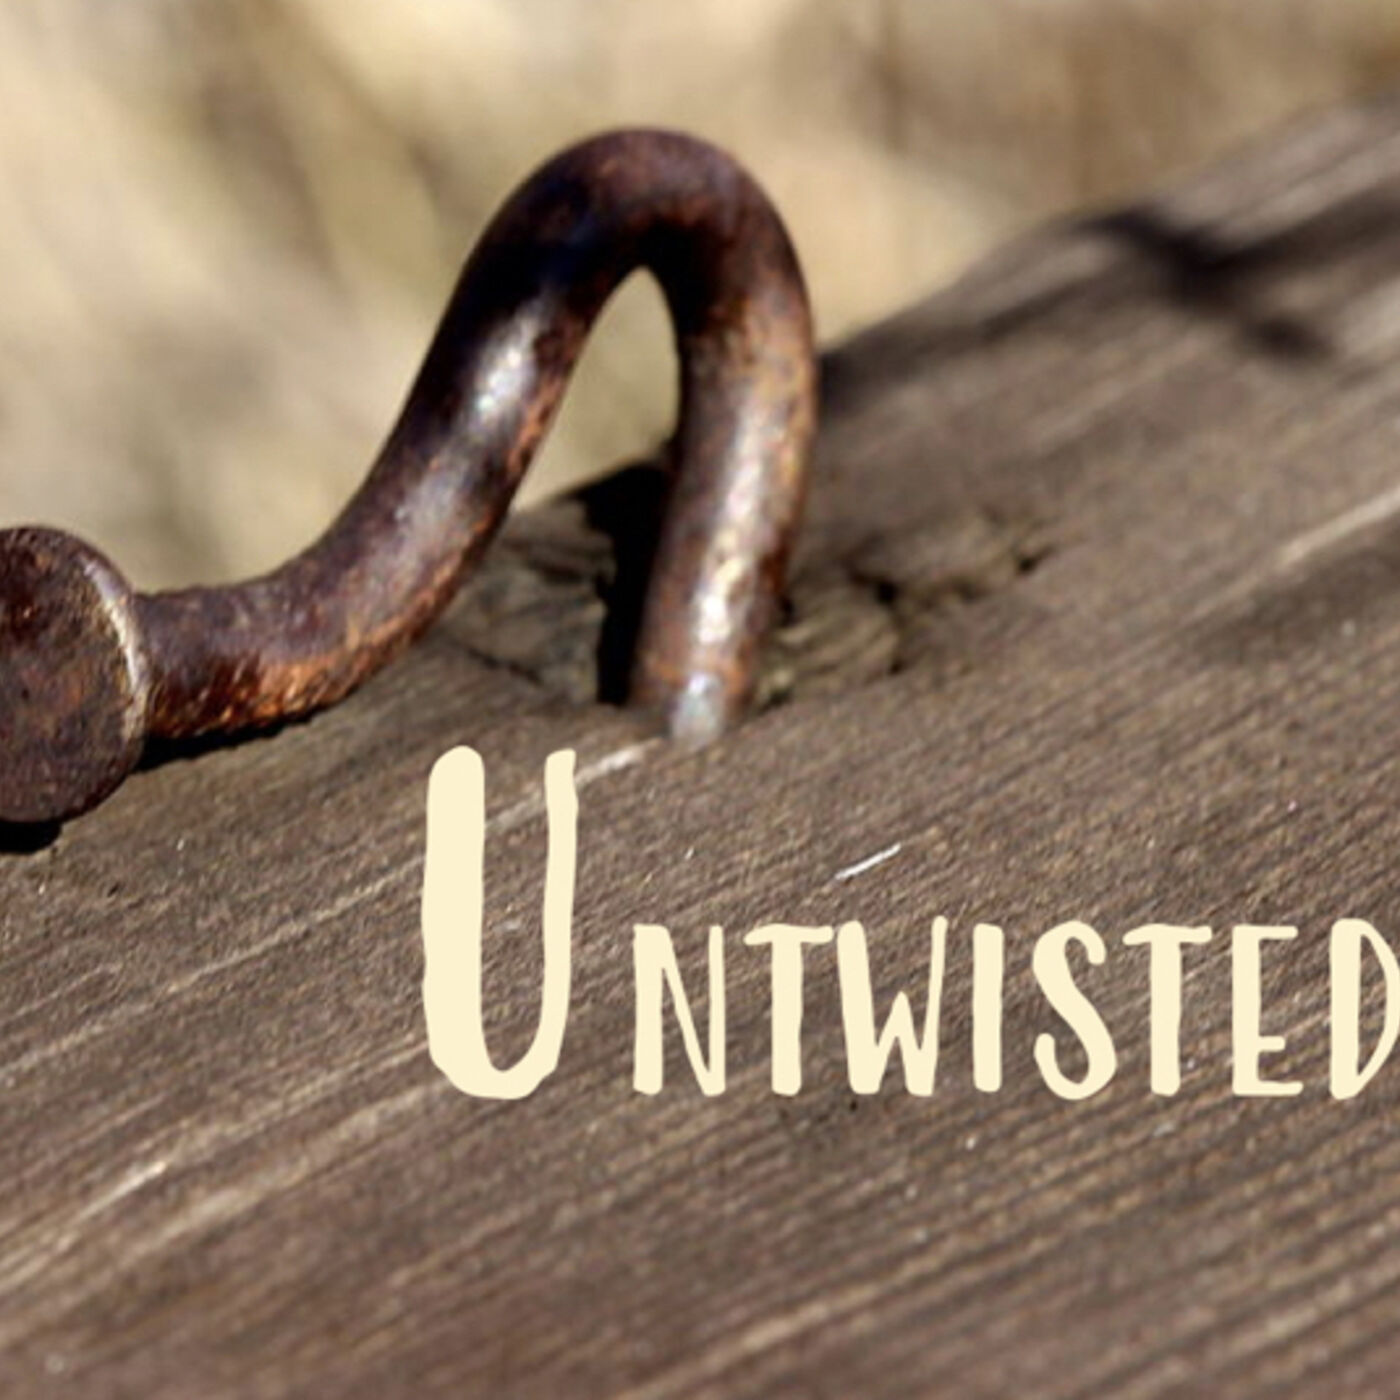 Untwisted: Waiting While Wanting (Patience)